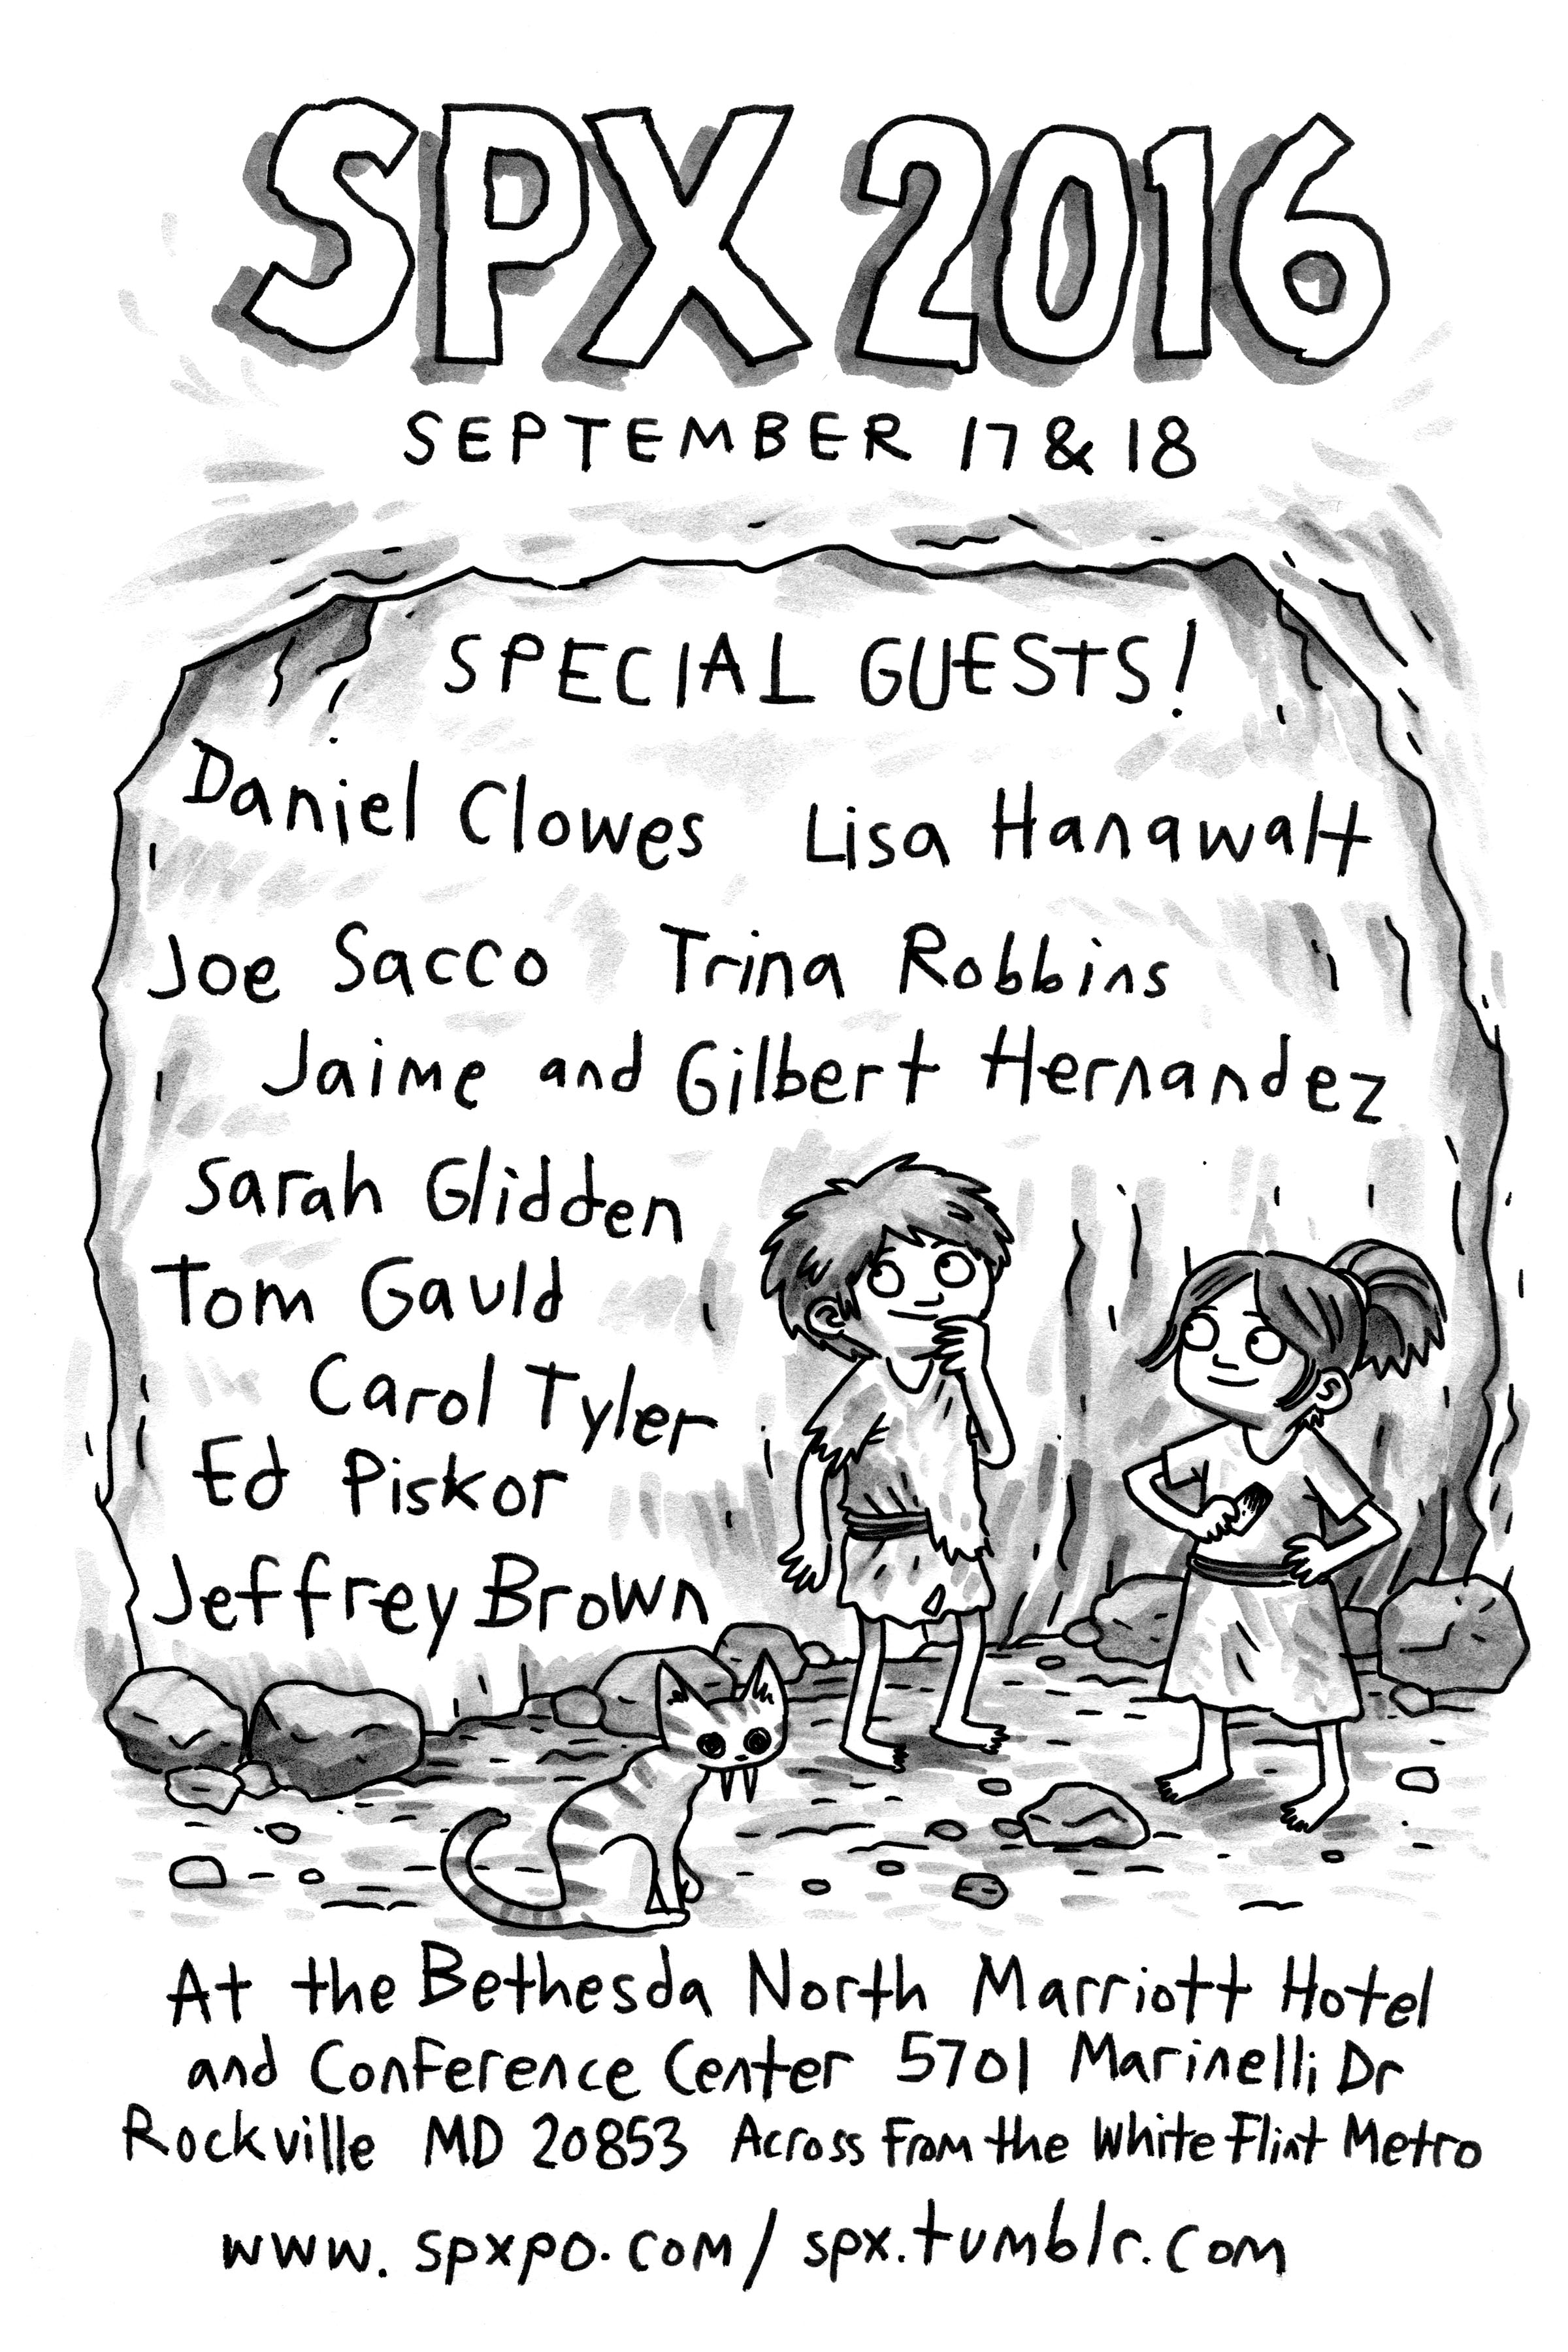 SPX 2016 Flyer Jeffrey Brown